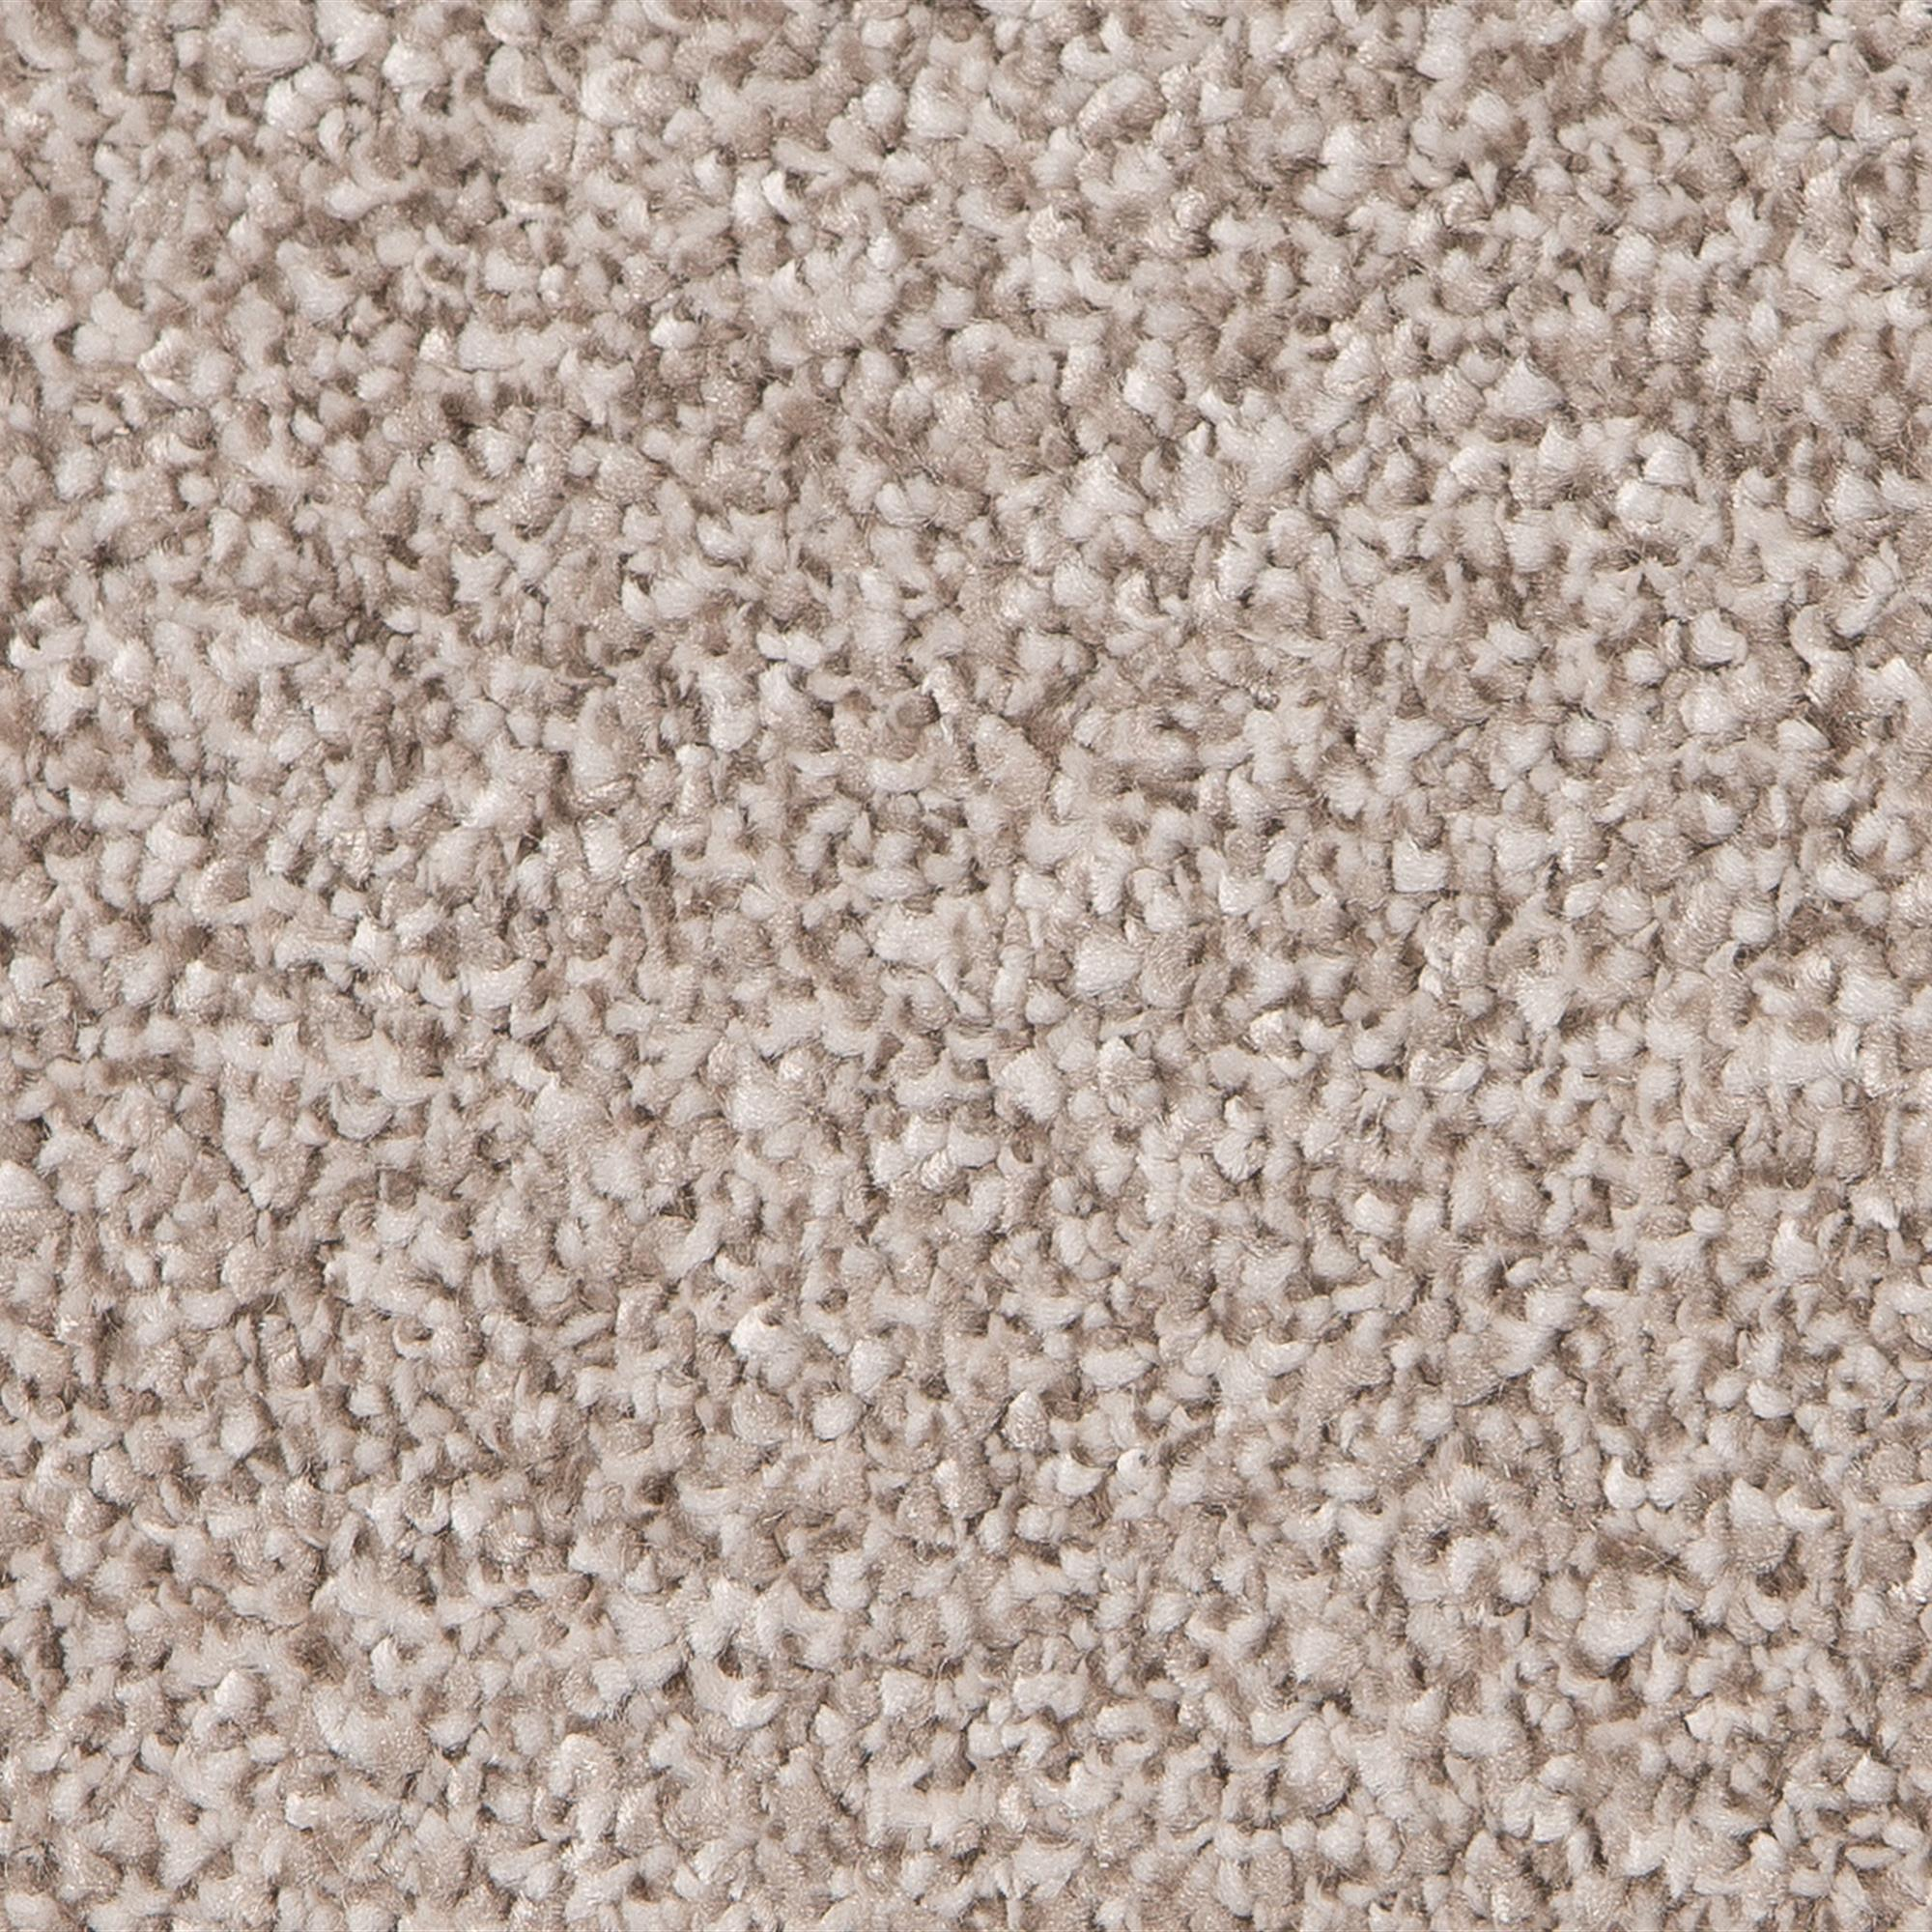 Living Charming Carpet, 74 Nougat, swatch